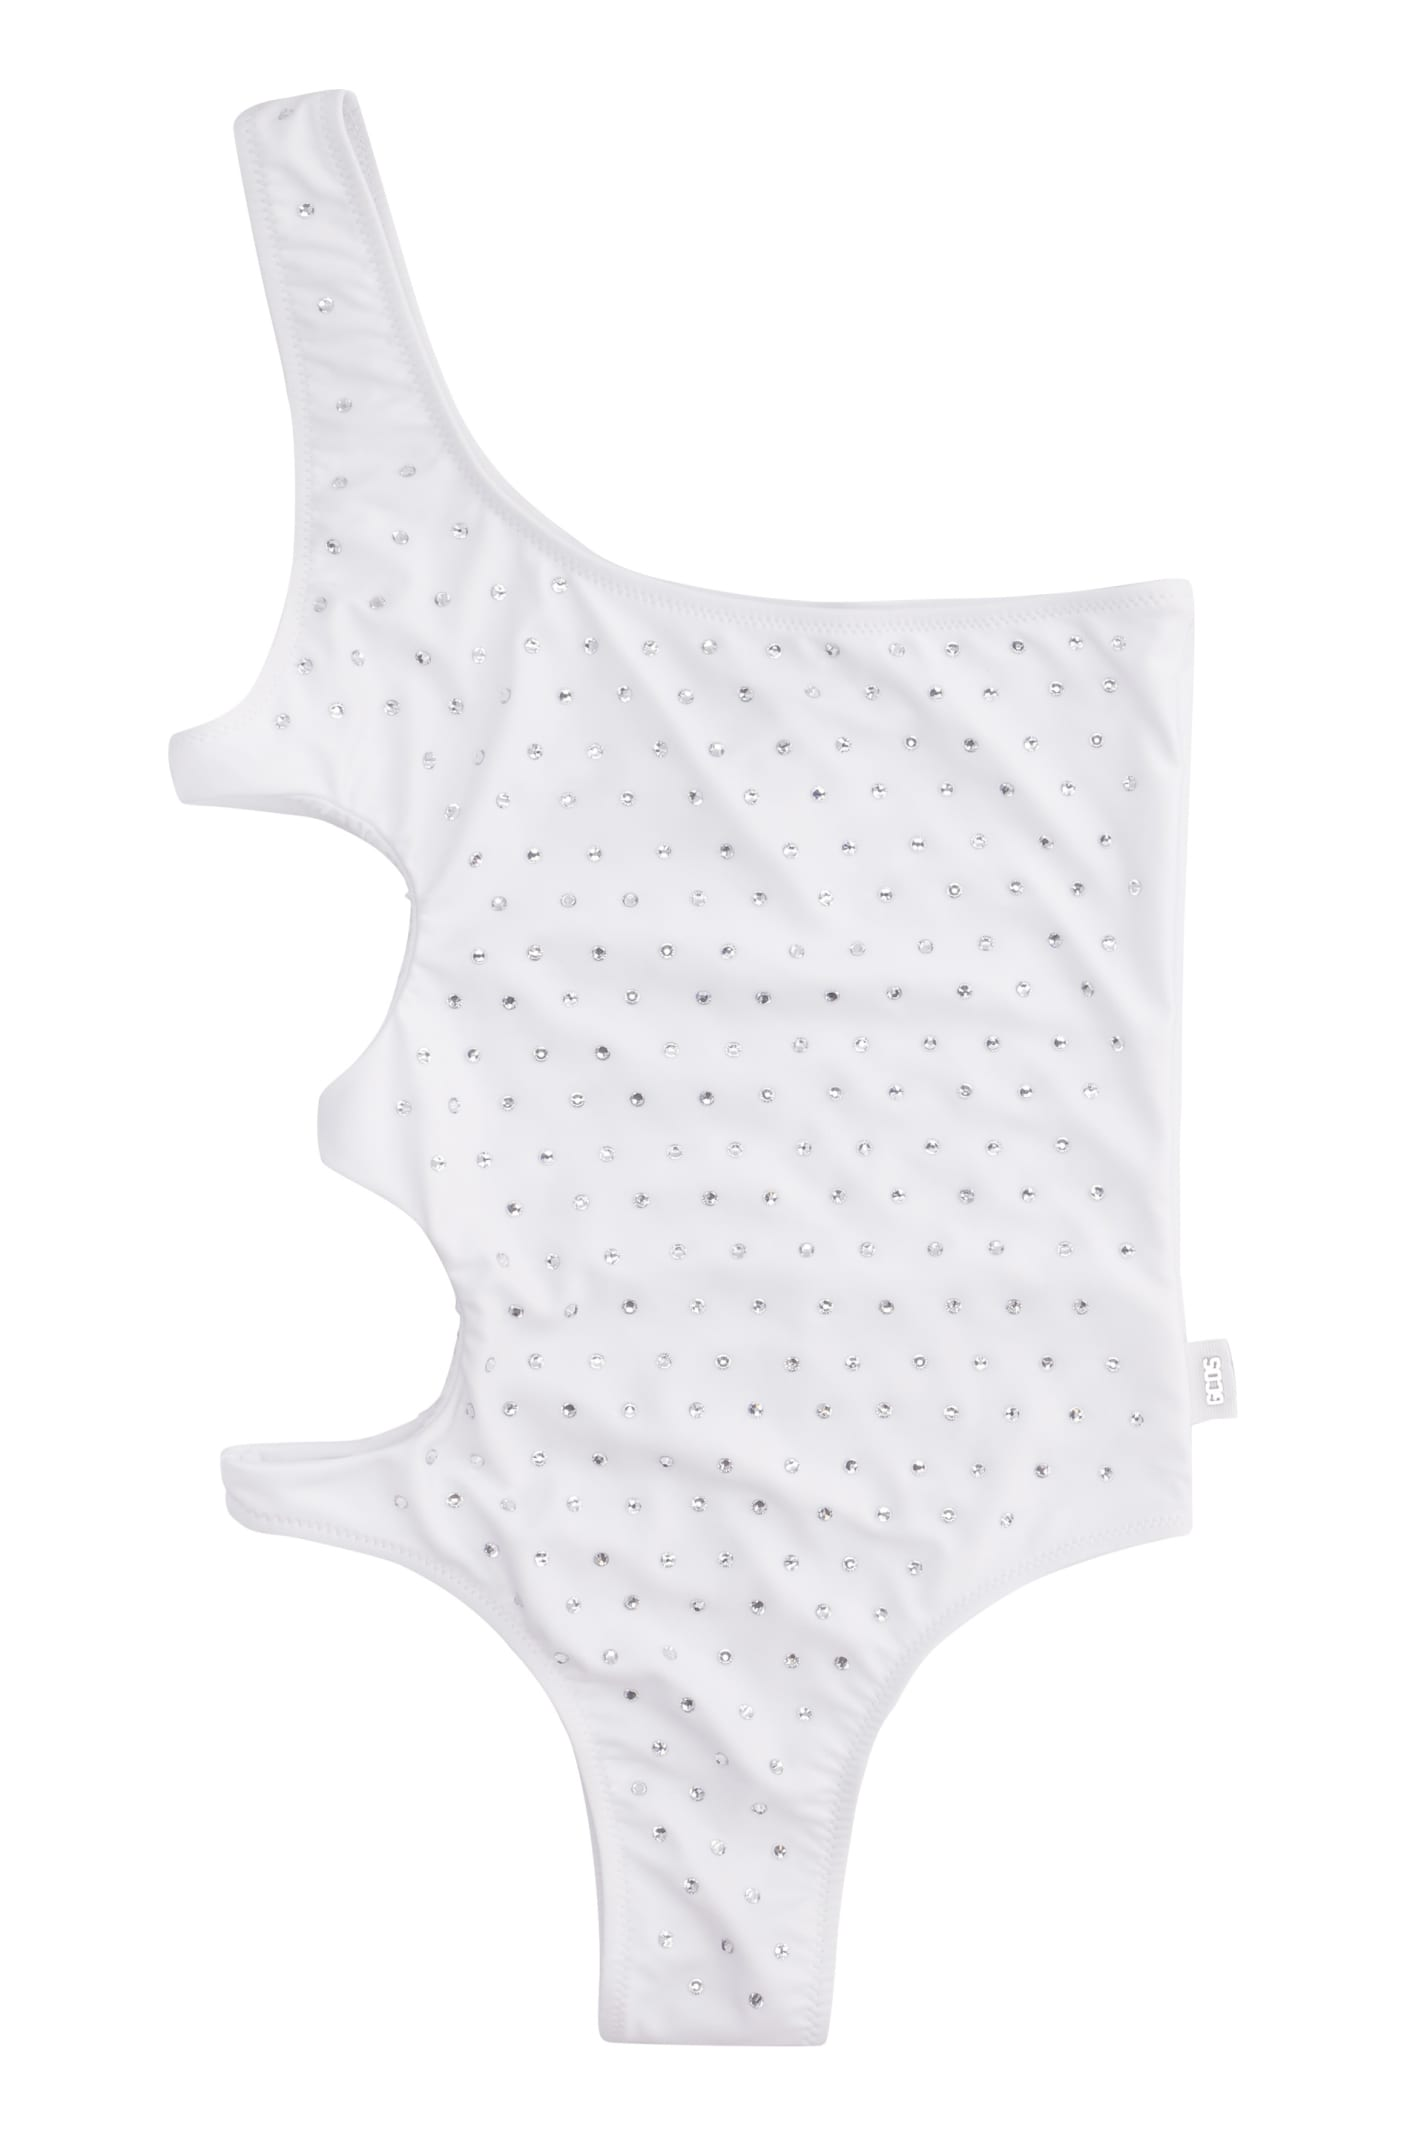 Gcds One-shoulder Swimsuit In White